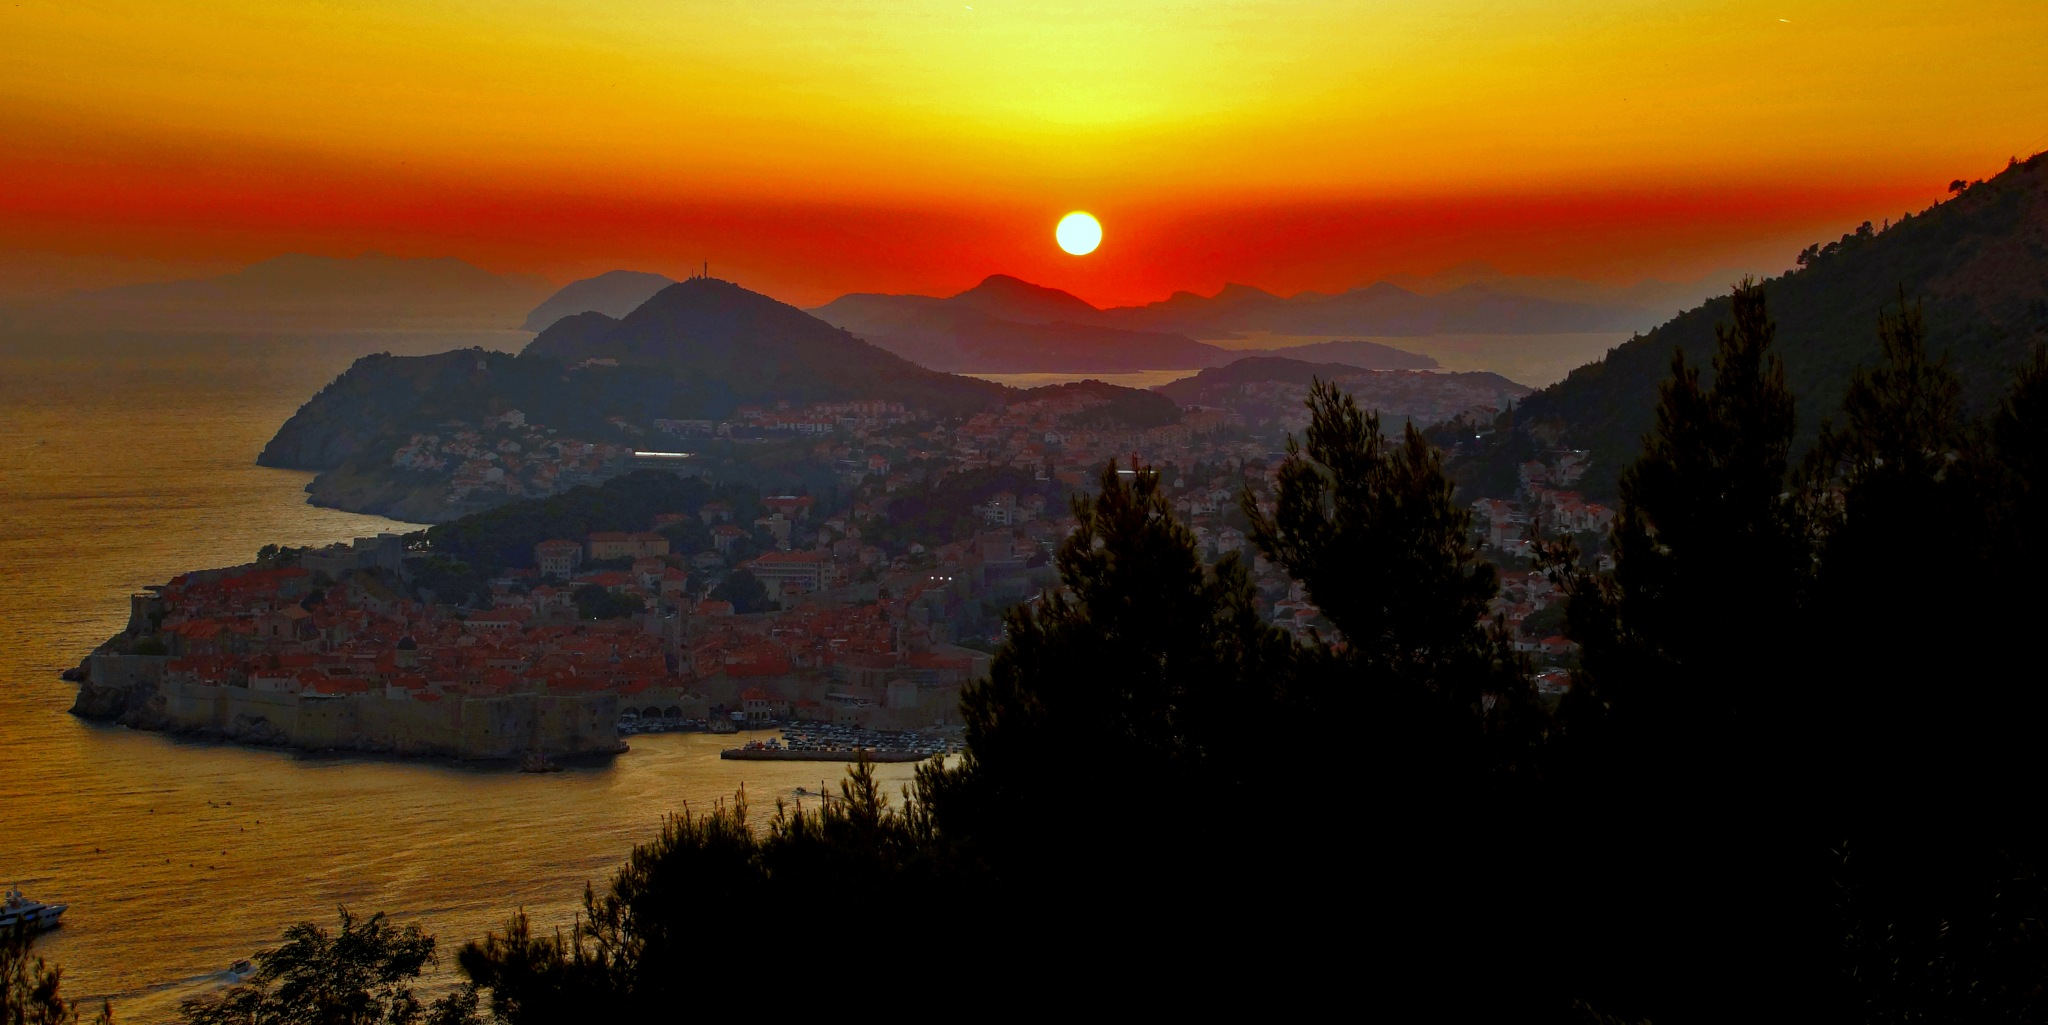 Sunset in Dubrovnik by darko1965